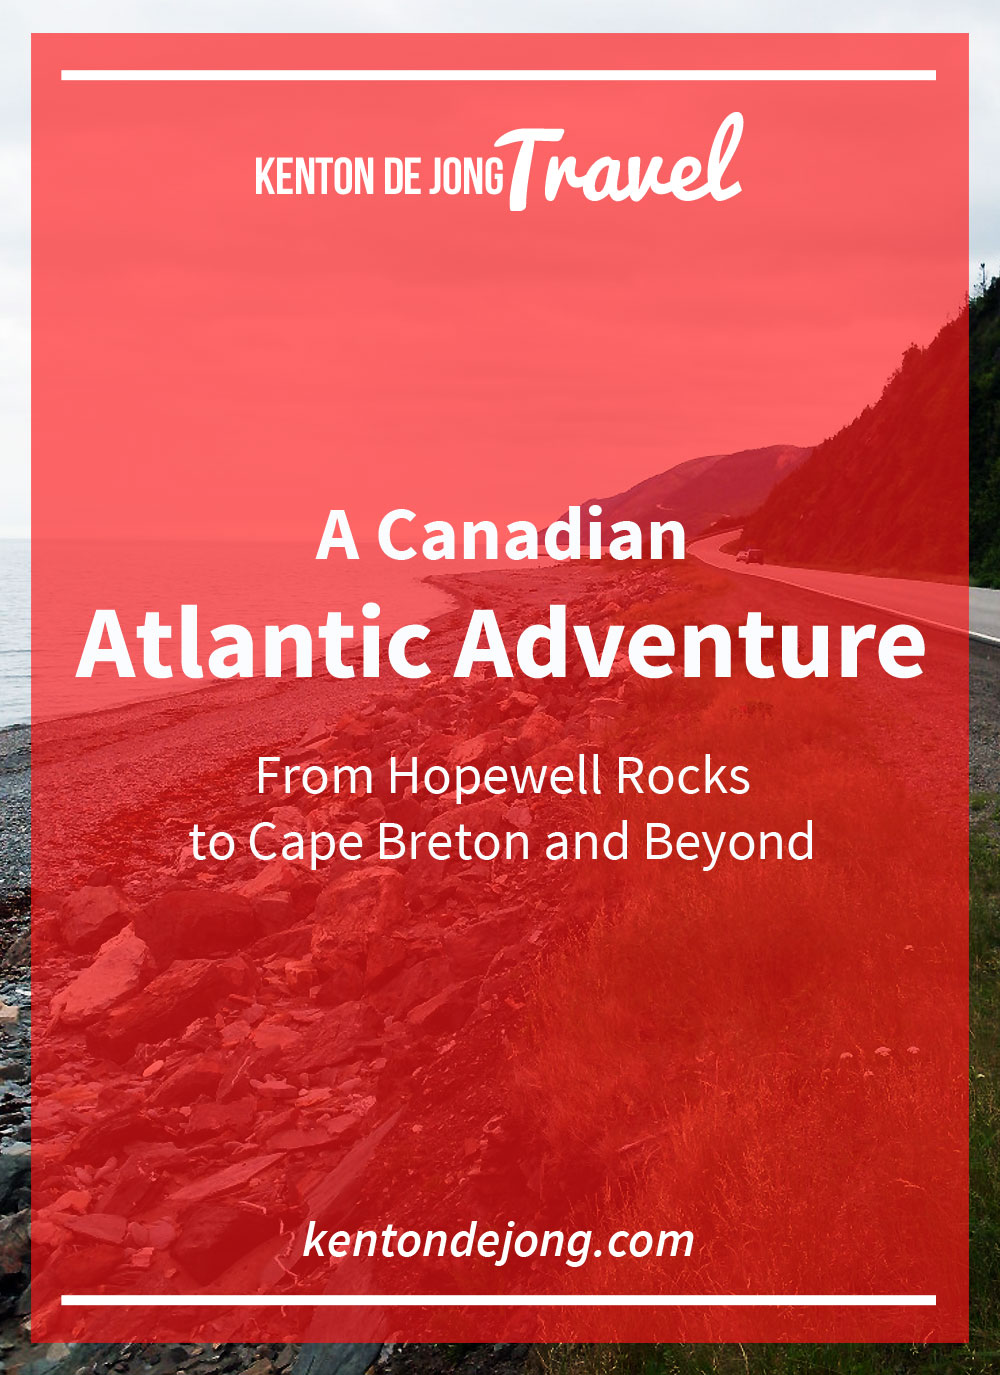 A Canadian Atlantic Adventure